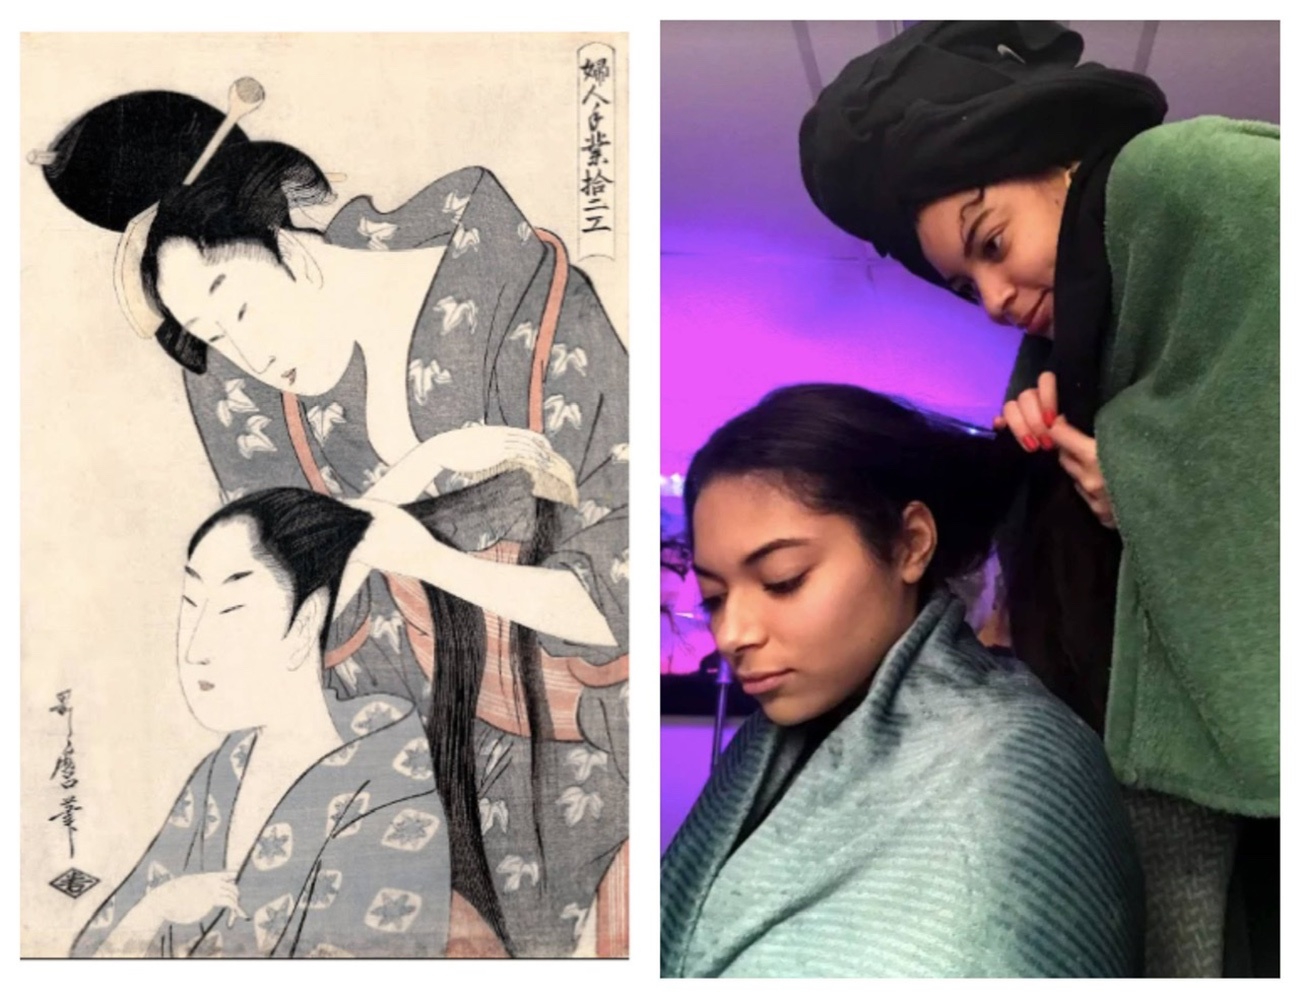 Side-by-side images showing a Japanese woodblock print of a woman combing another woman's hair, juxtaposed with a present-day photo of two women re-creating the same scene